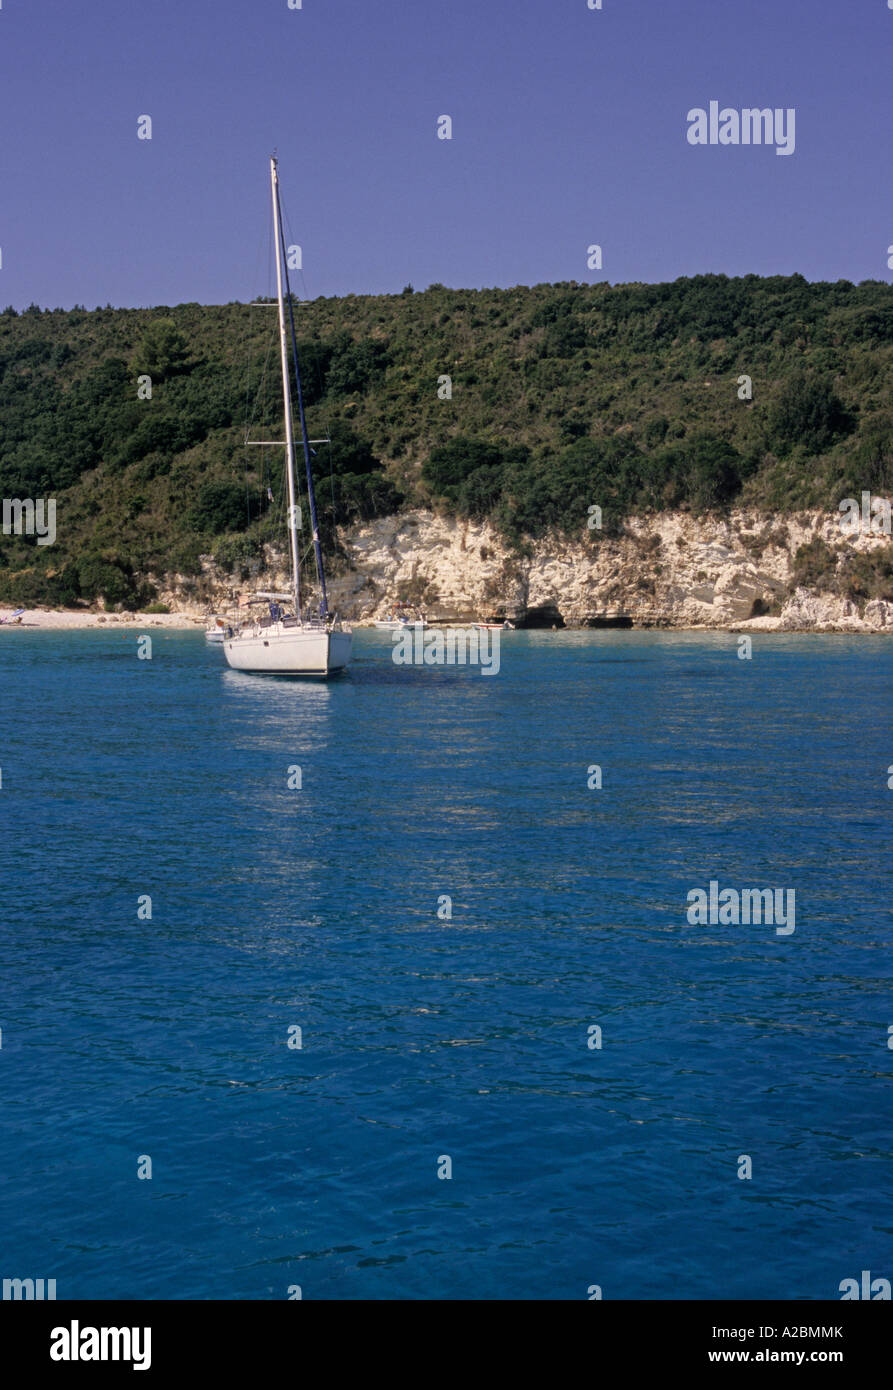 a sailing boat in Antipaxos Island Greece - Stock Image